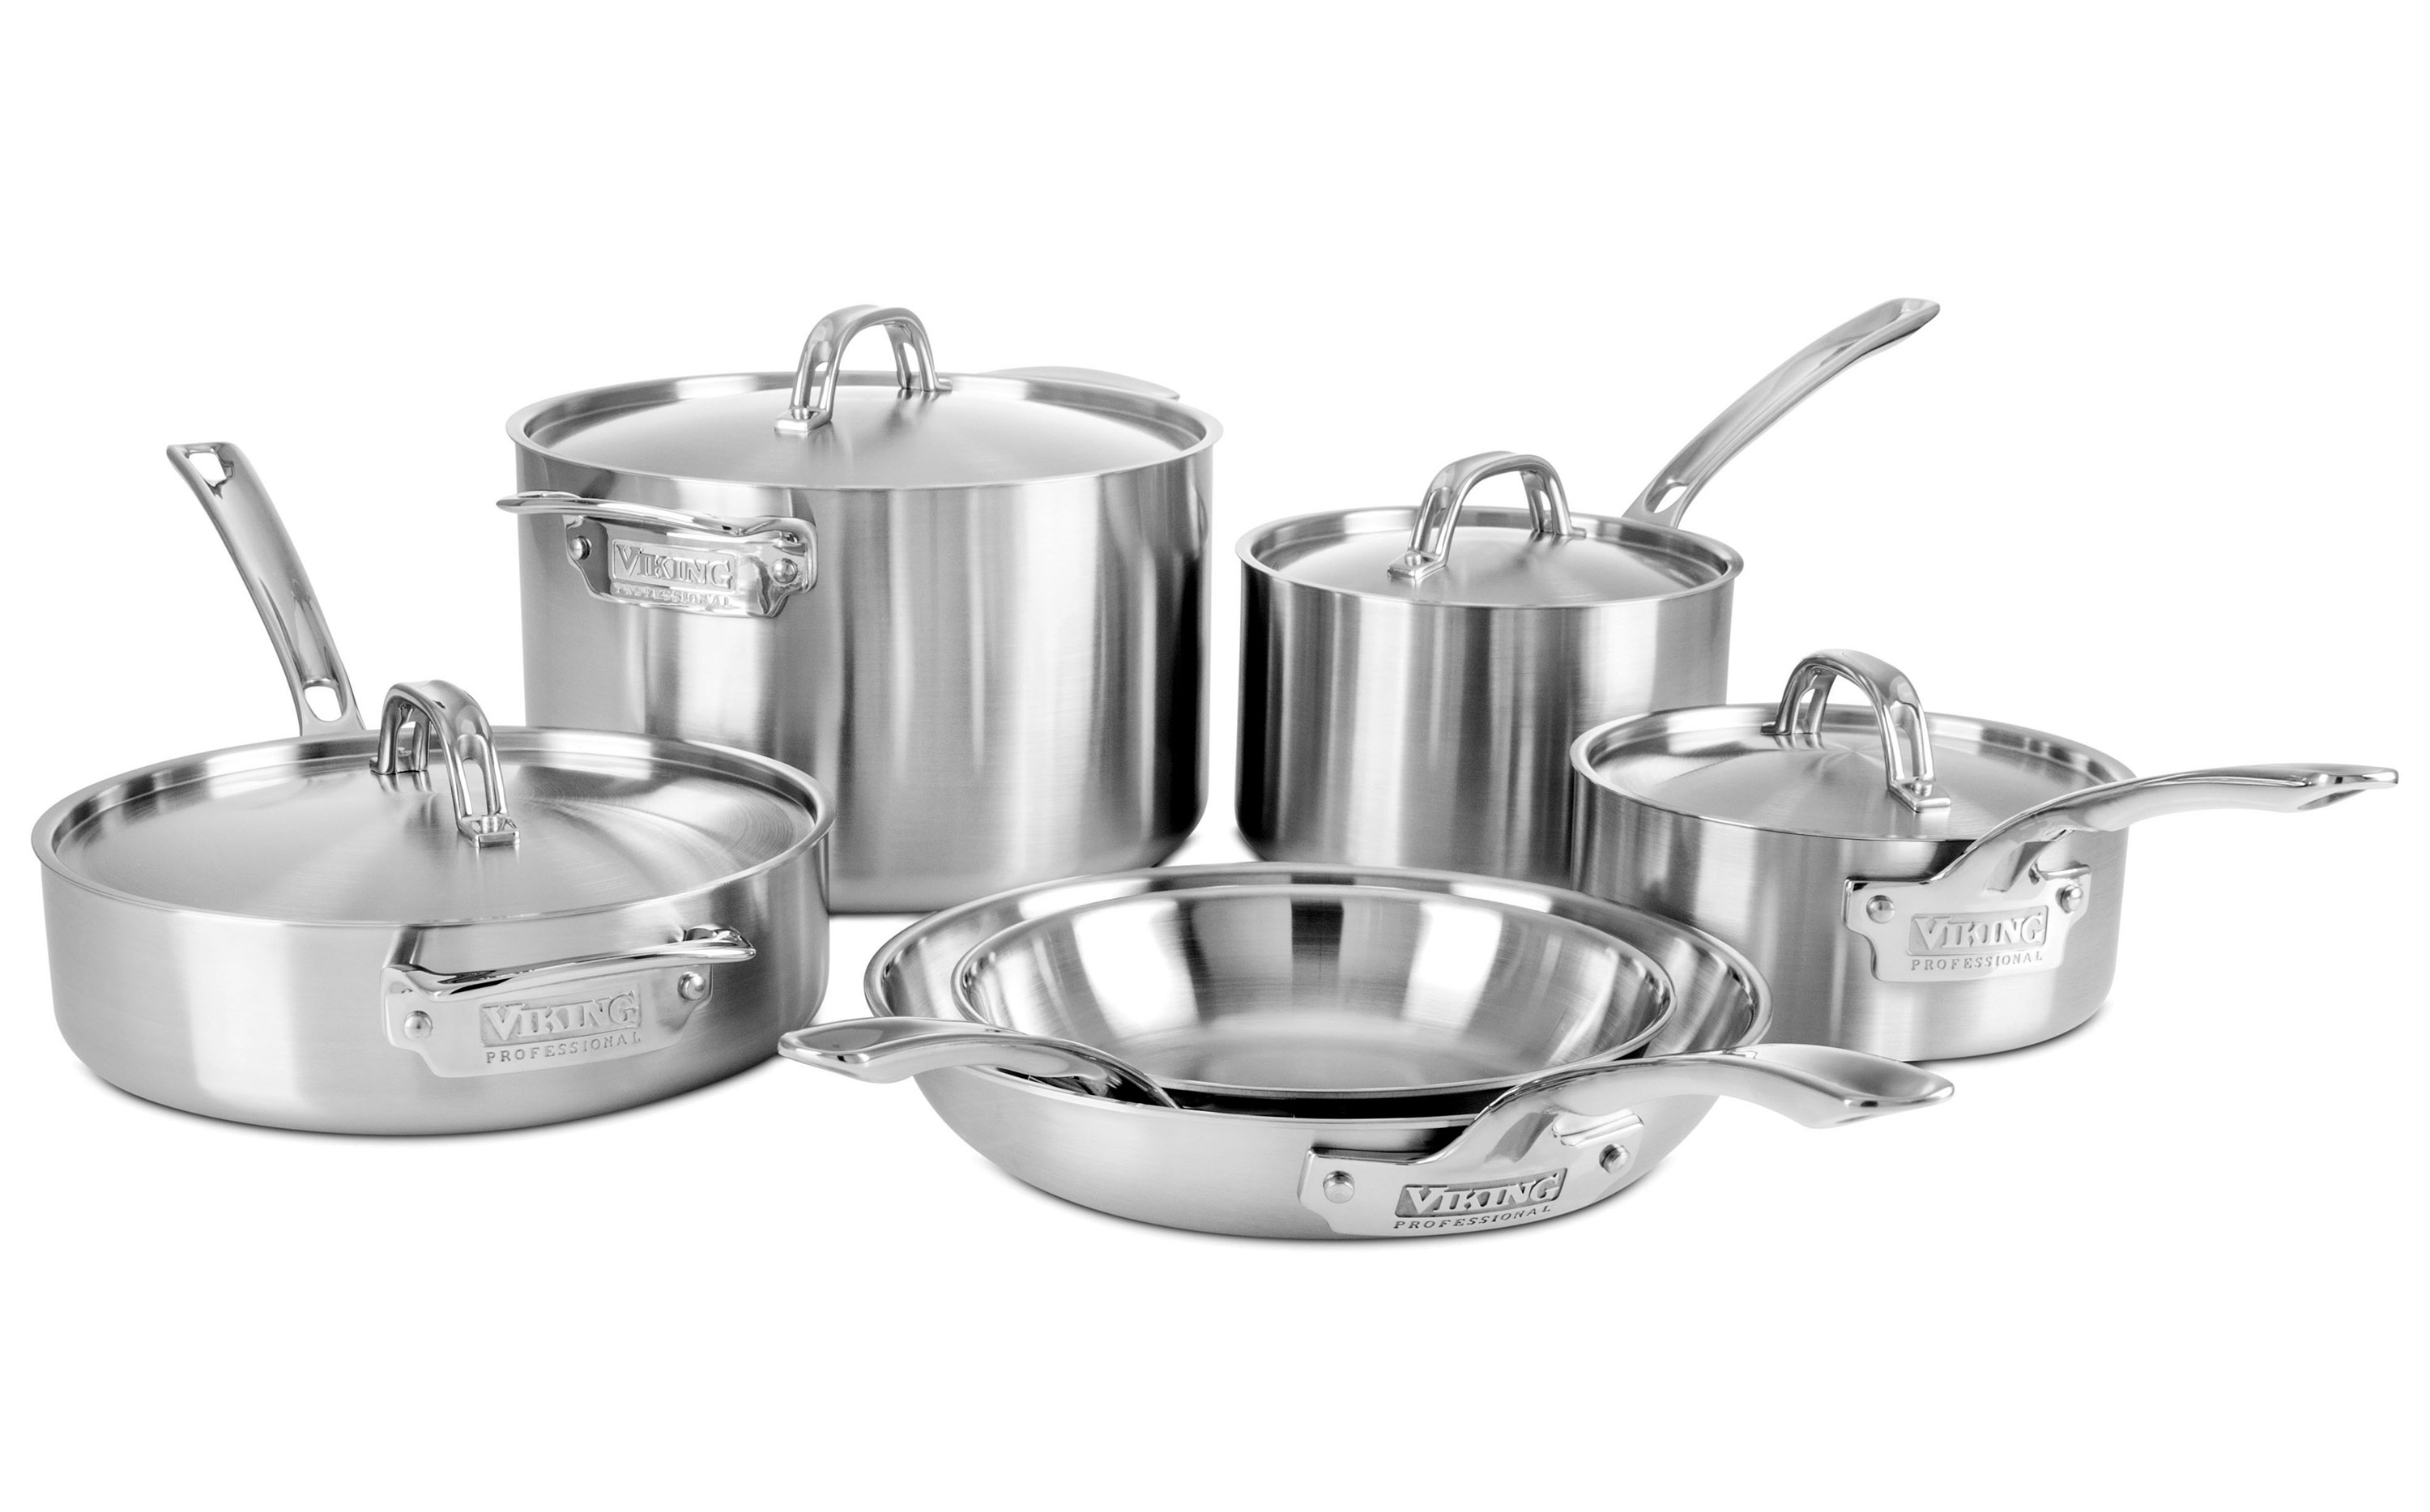 Viking Professional 5 Ply Stainless Steel Cookware Set, 10 Piece | Cutlery  And More